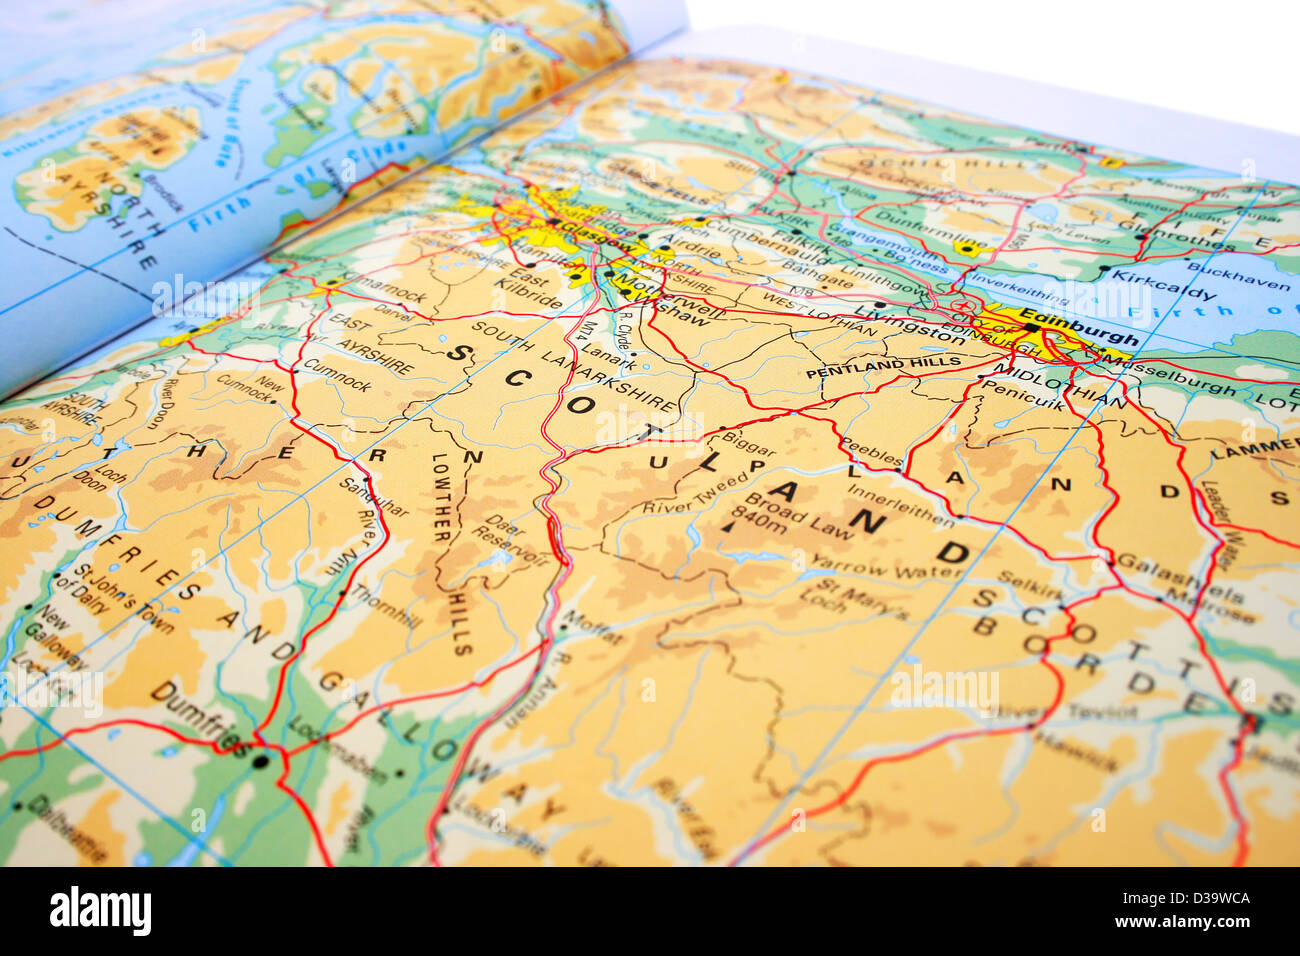 Map Of Uk Mountains And Rivers.United Kingdom Map Mountains Rivers Stock Photo 53692586 Alamy